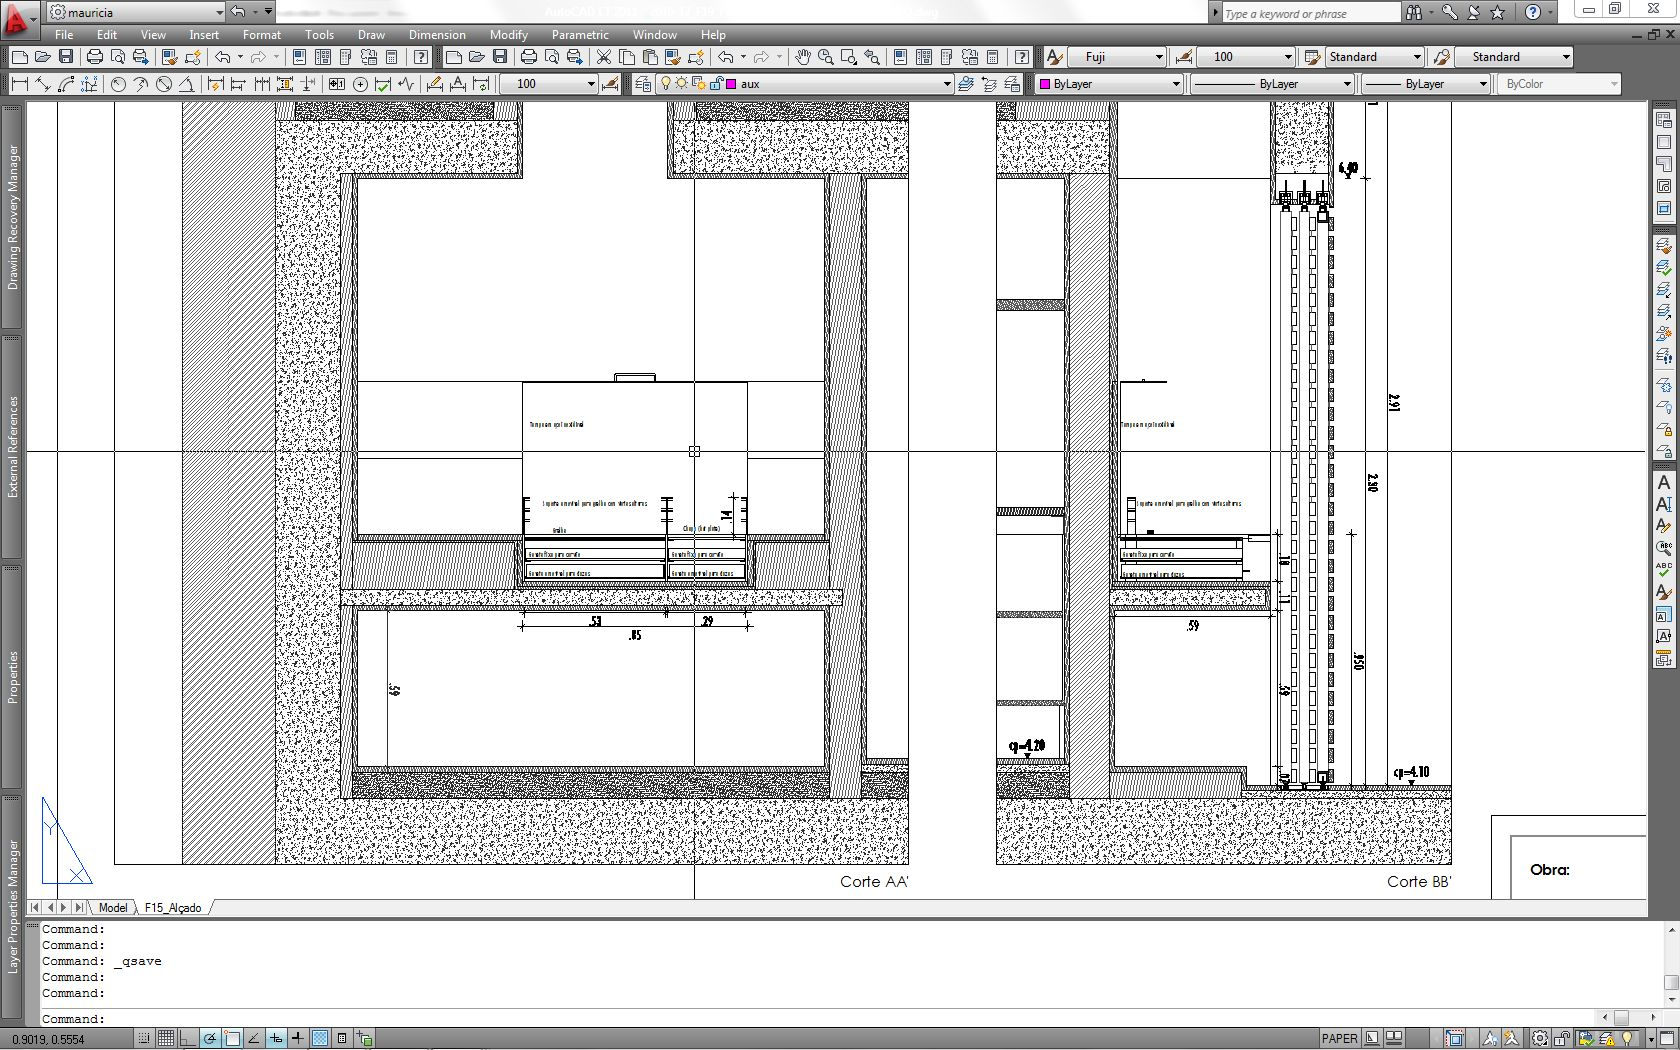 Blog Archives Priorityju Kartu Perdana Loop Trial Donamp039t Buy Autocad Concrete Hatch Problem